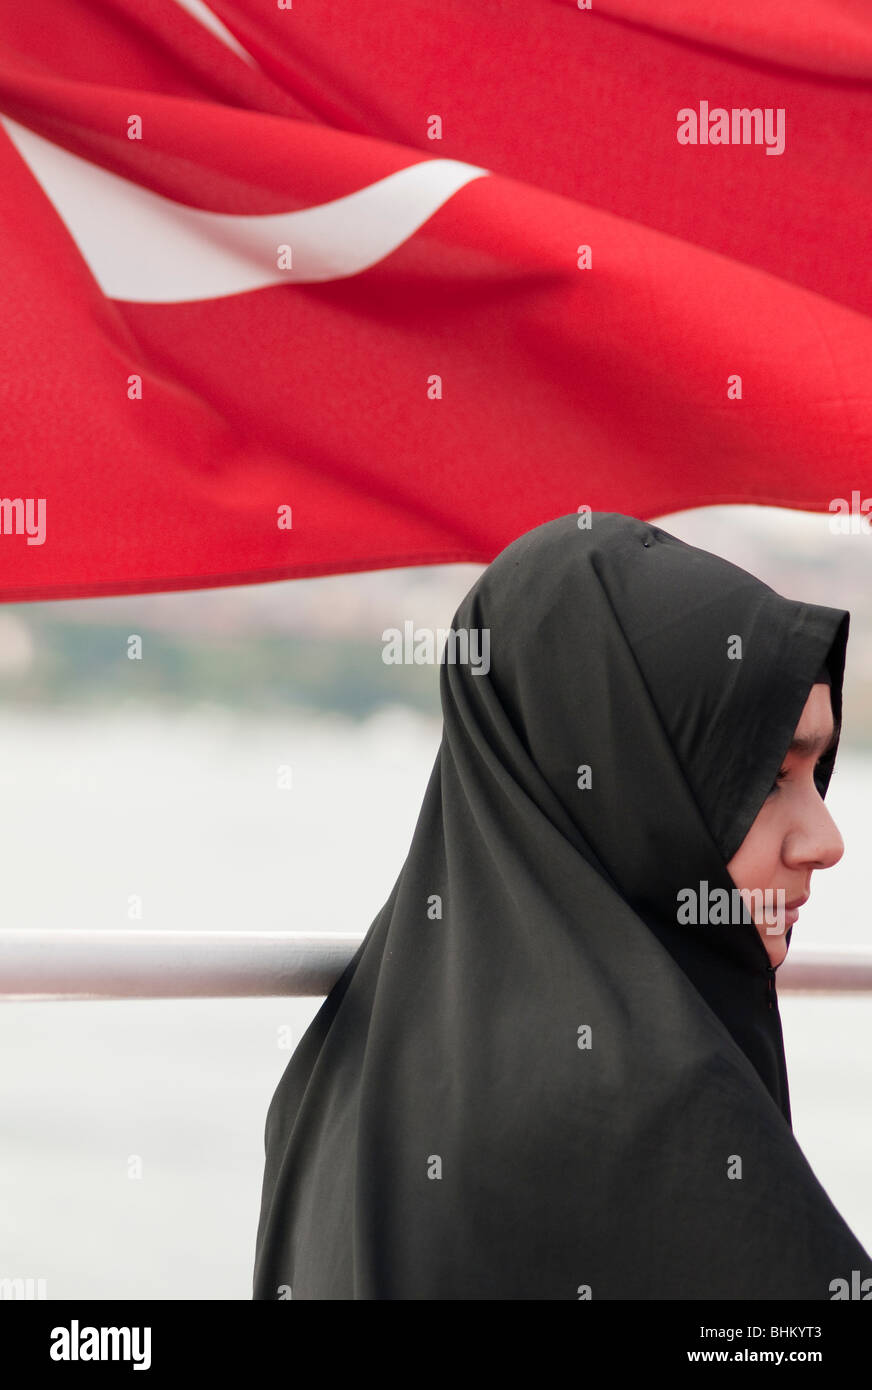 A young women wearing a hijab stands in front of the Turkish national flag - Stock Image